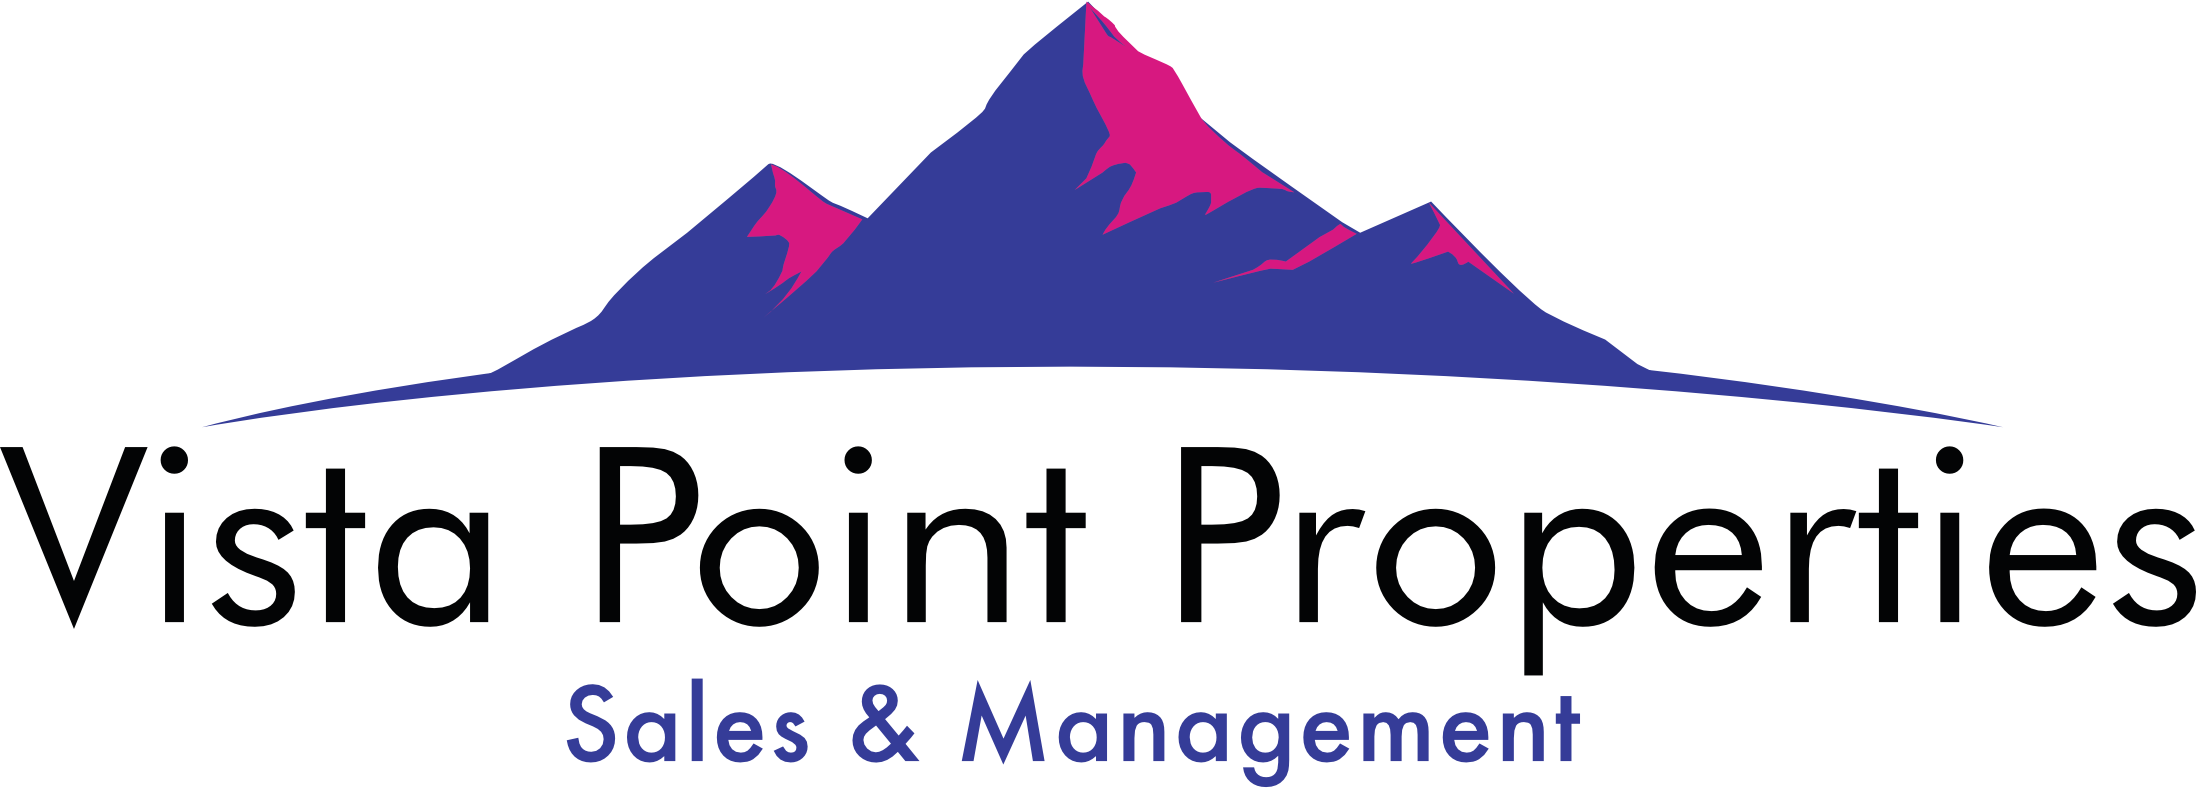 Vista Point Properties | Property Search - Vista Point Properties